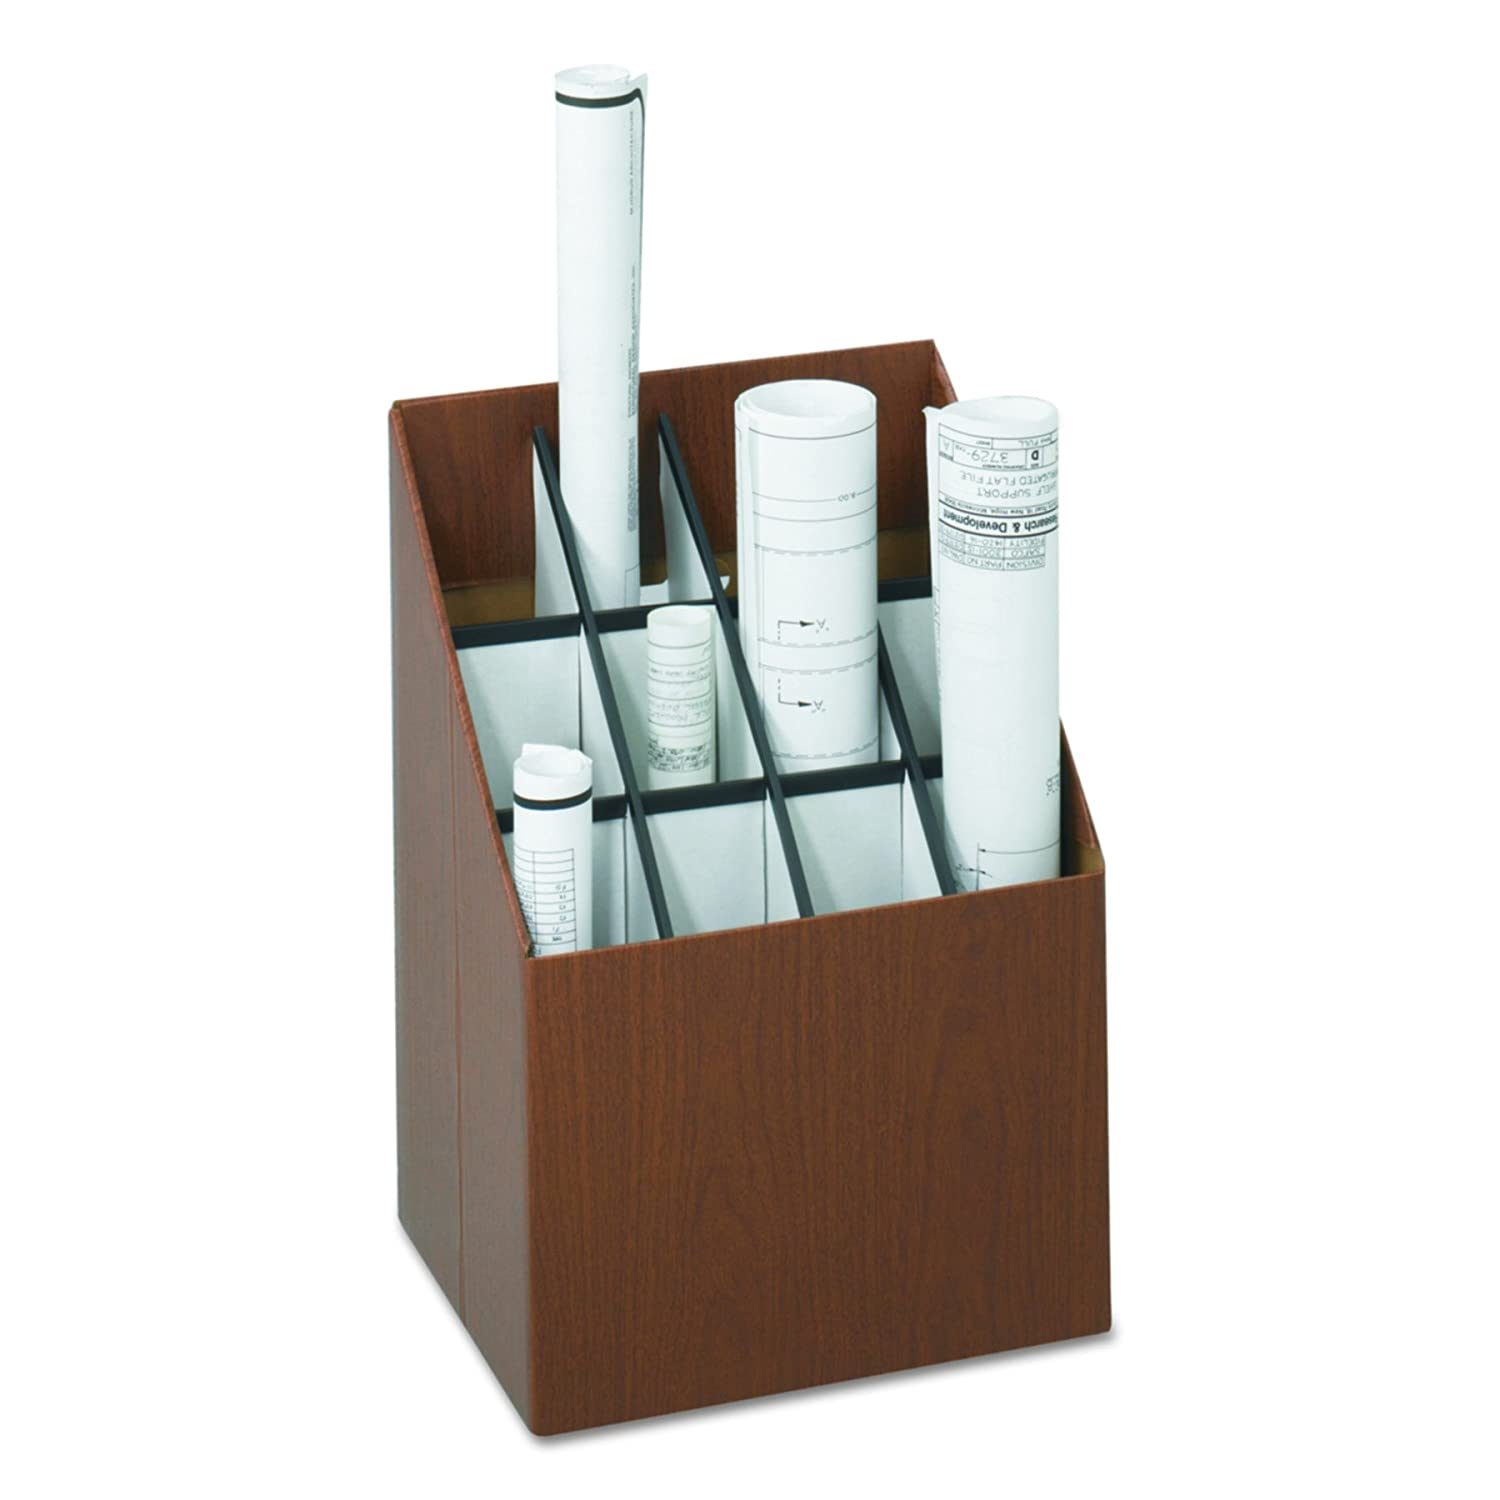 Safco Upright Roll Storage File -12 Roll(s) -Fiberboard -1 Each -Wood Grain S.P. Richards CA 3079